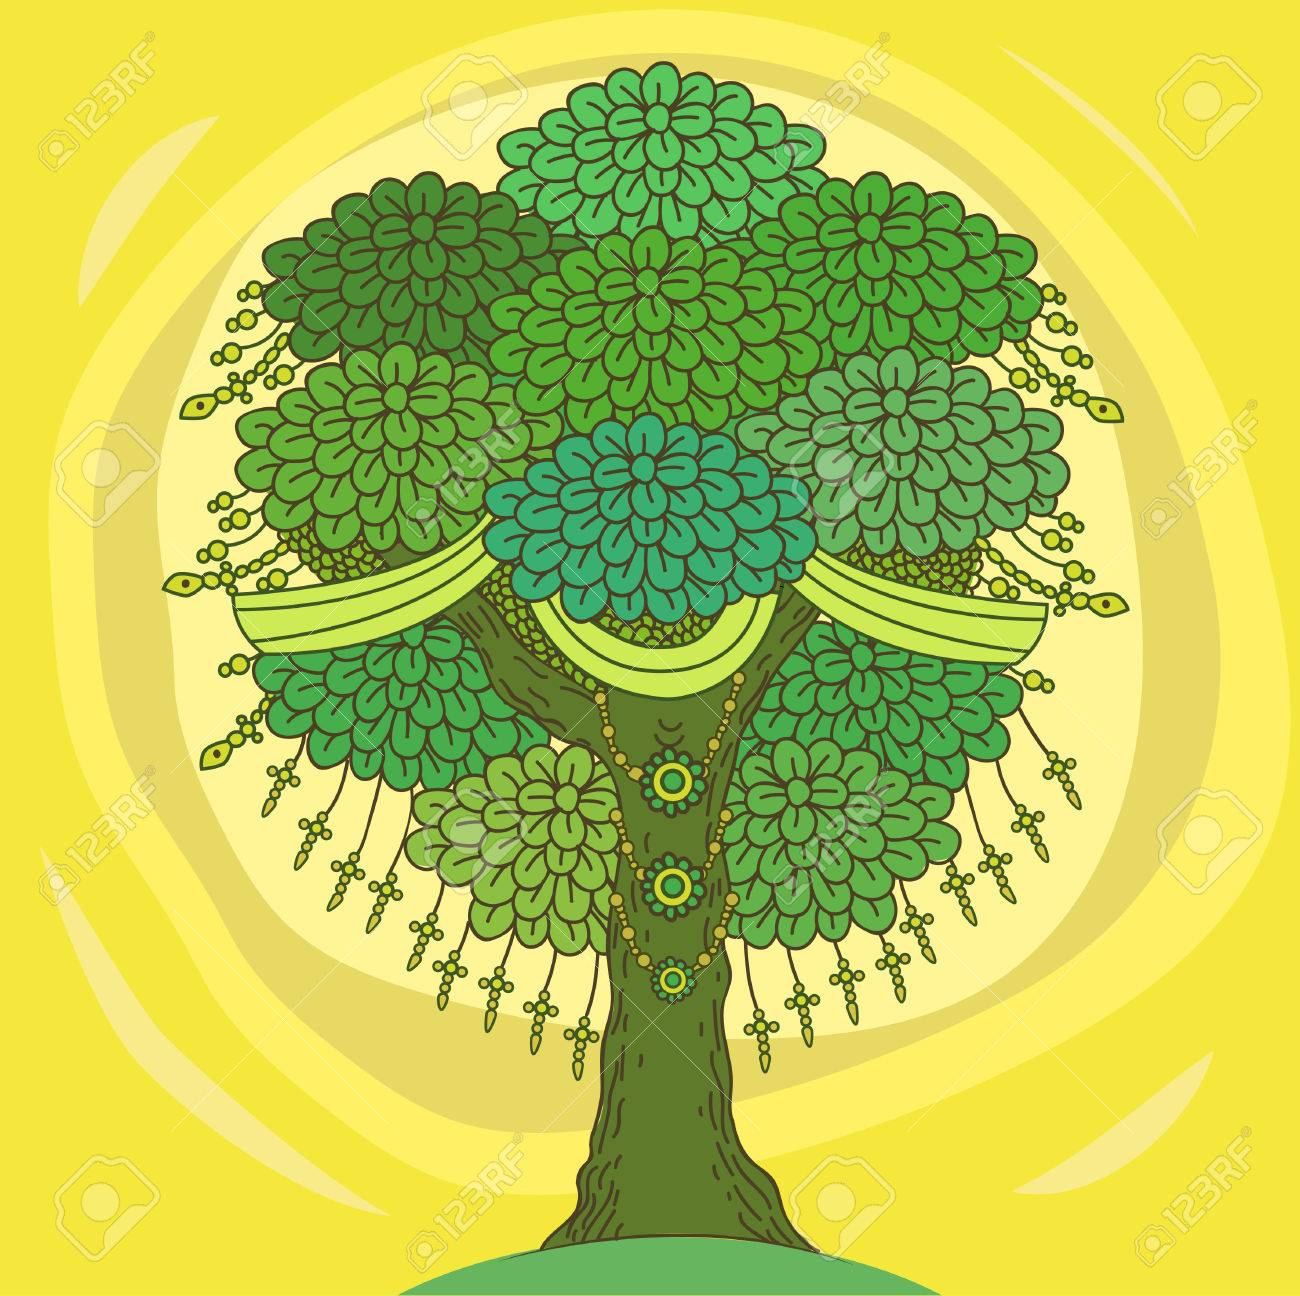 Amazing Color Tree Of Life In The Indian Style With Leaves Cartoon Royalty Free Cliparts Vectors And Stock Illustration Image 67681055 It premiered on october 6 , 2019 , and is the eleventh episode in the third season. amazing color tree of life in the indian style with leaves cartoon